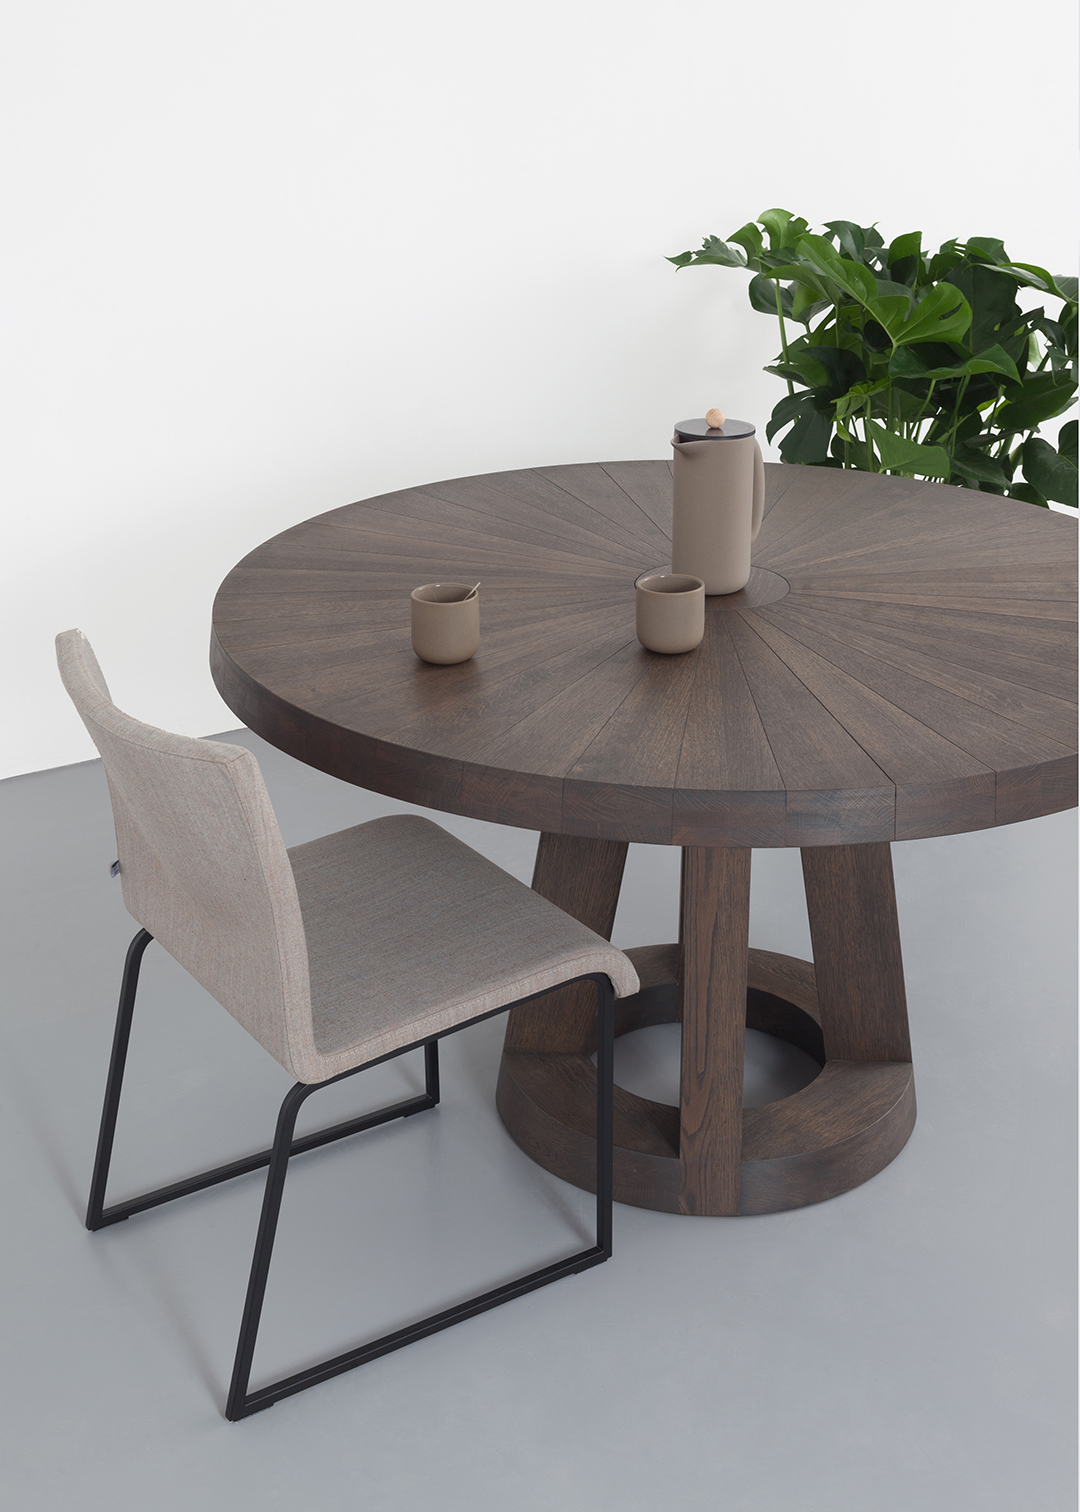 Solid Round Design Table L Remy Meijers L Odesi. Your